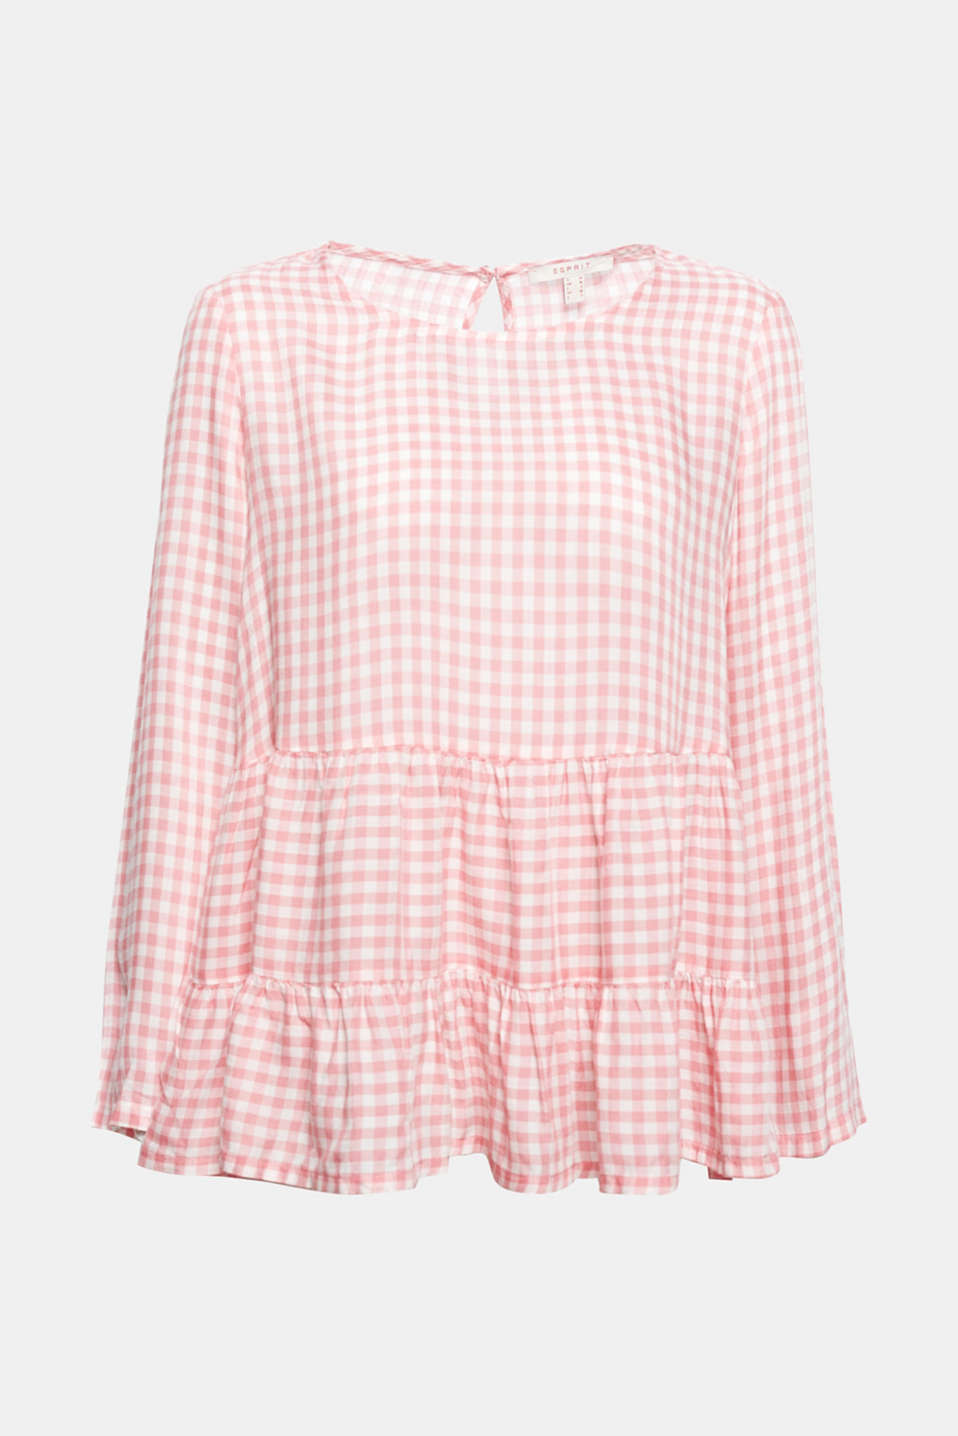 With this silky smooth, super lightweight gingham blouse with a flared tiered hem you will be all set for spring!